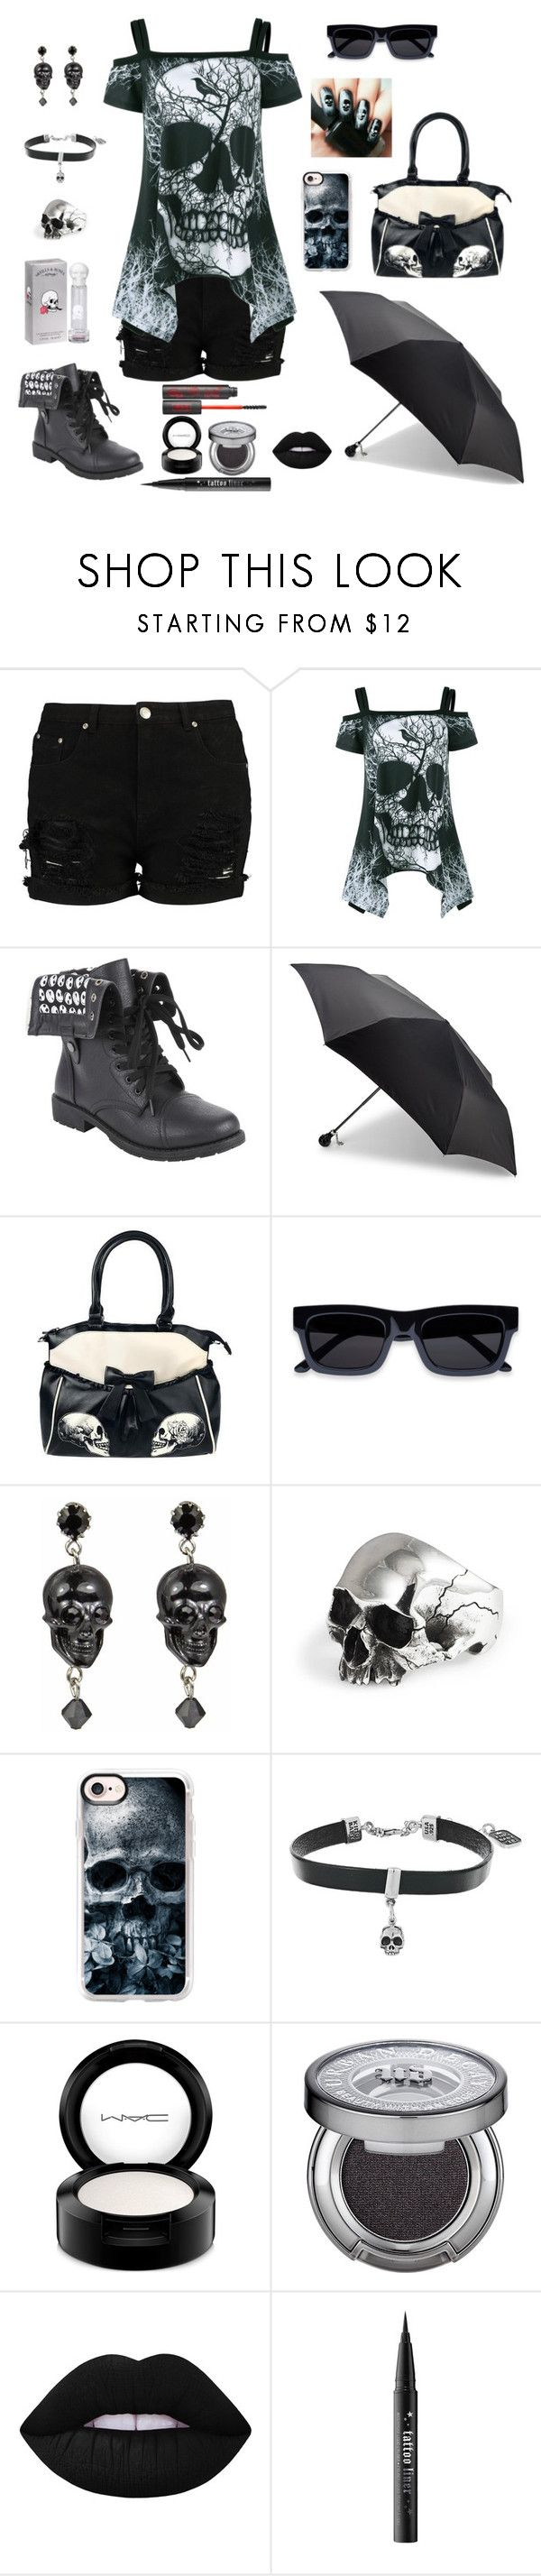 """""""When our lives are over and all that remains, are our skulls and bones, let's take it to the grave..."""" by darksnowwitch ❤ liked on Polyvore featuring Hot Topic, Alexander McQueen, Tarina Tarantino, Casetify, King Baby Studio, MAC Cosmetics, Urban Decay, Lime Crime and Kat Von D"""